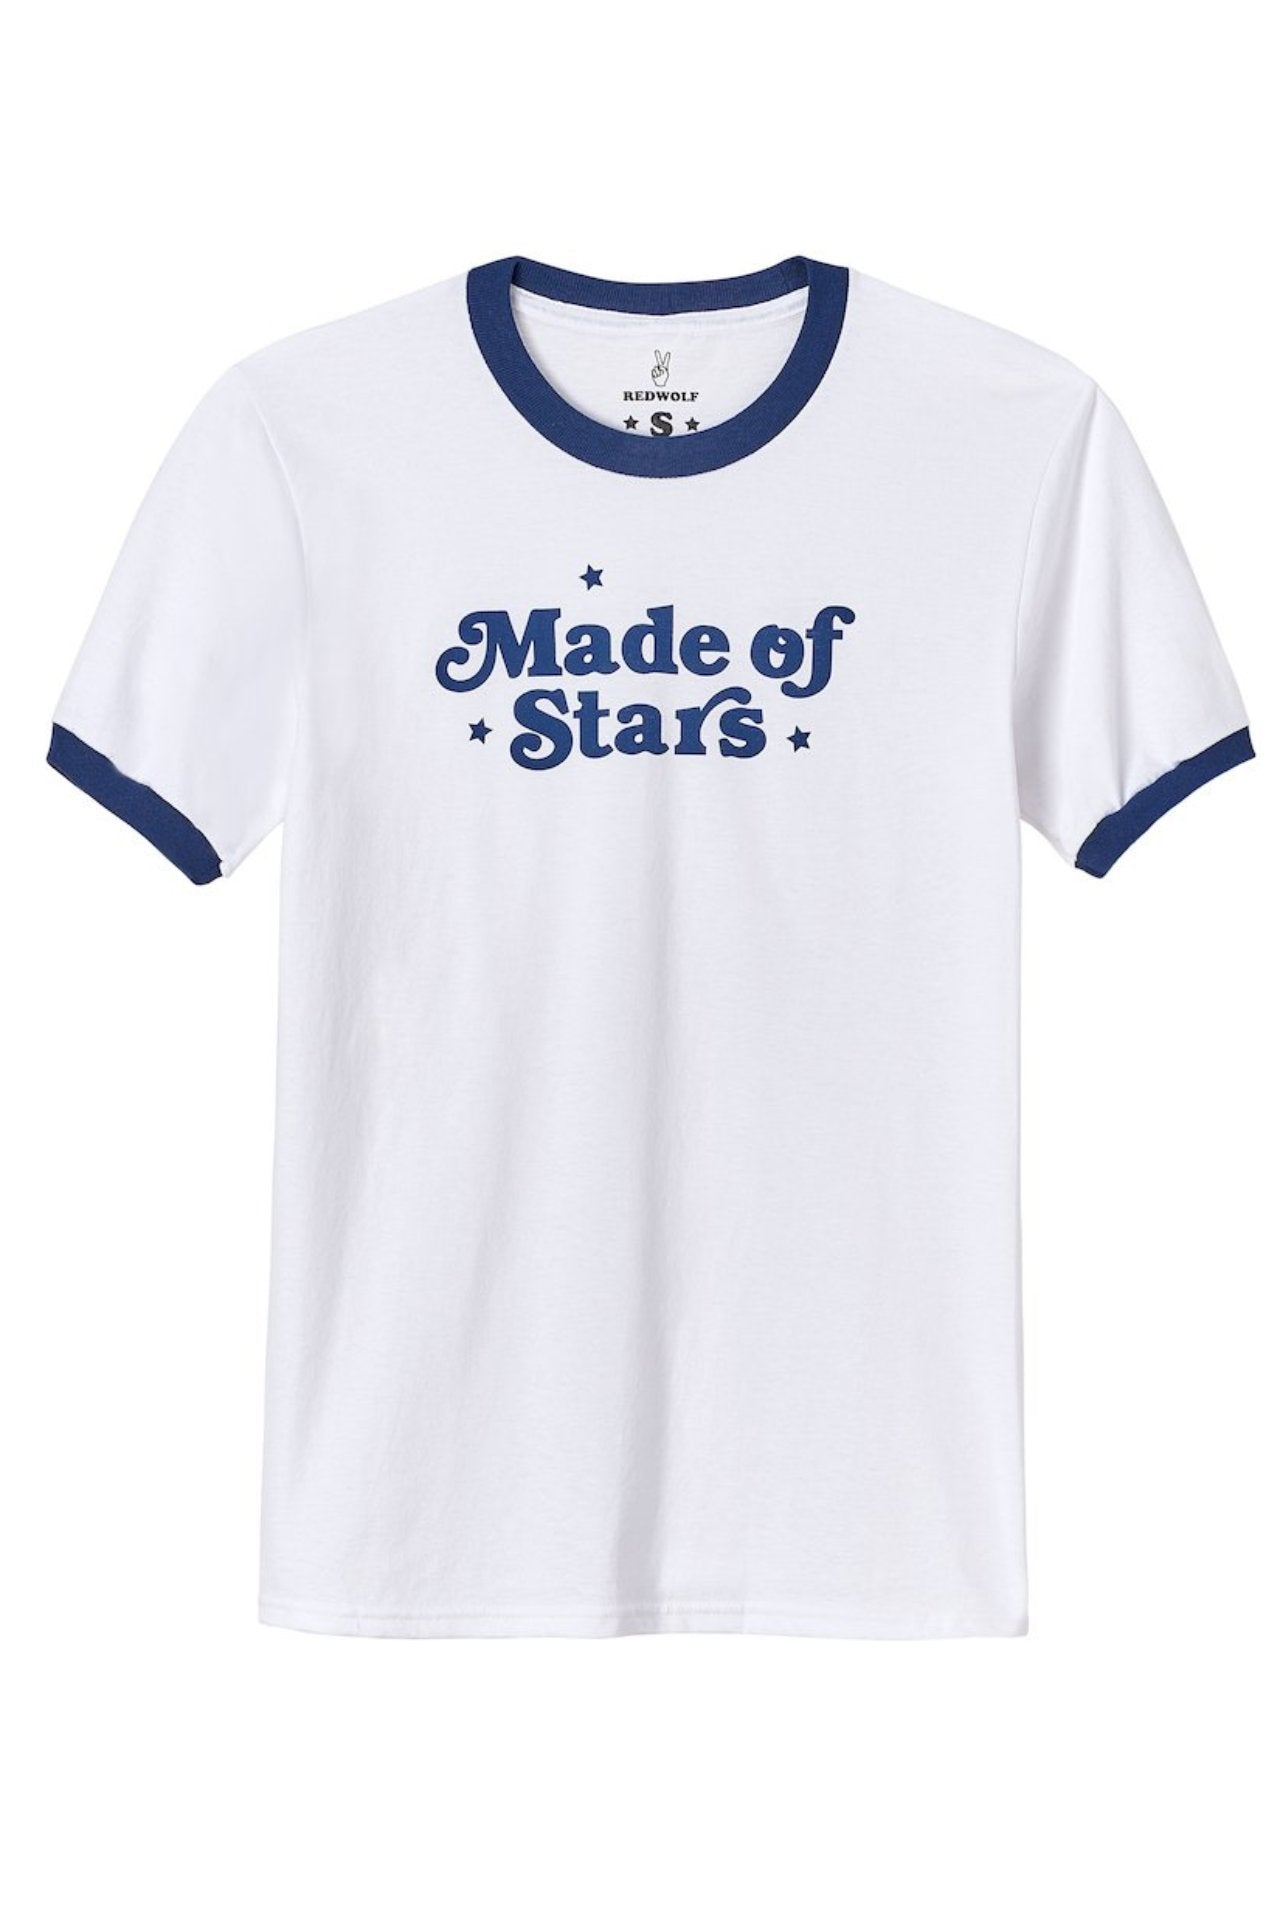 MADE IN THE STARS Ringer Tee